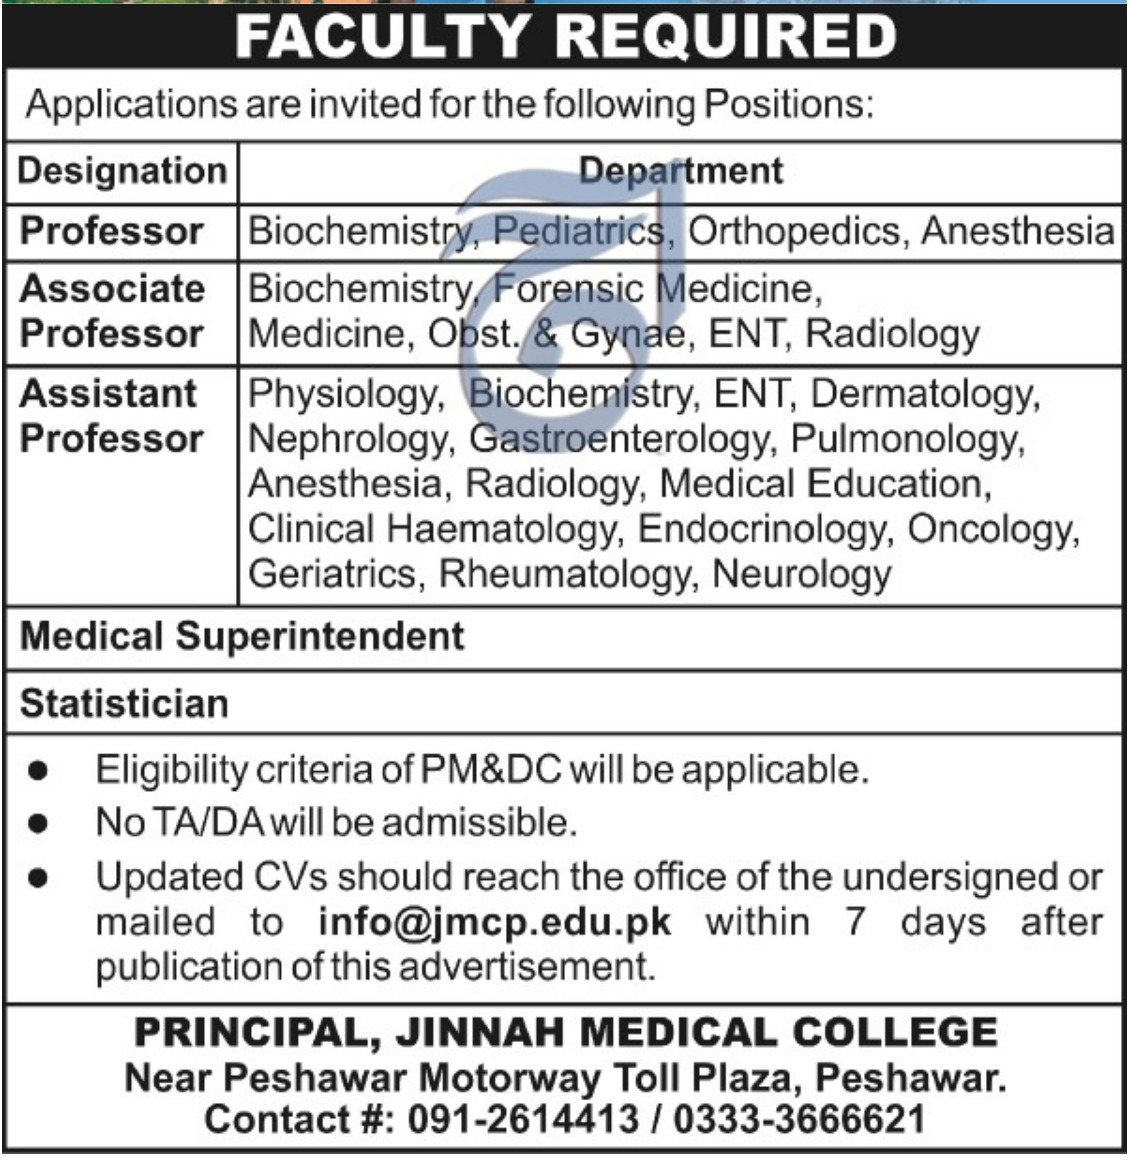 Jinnah Medical College Peshawar Jobs 2019 Khyber Pakhtunkhwa